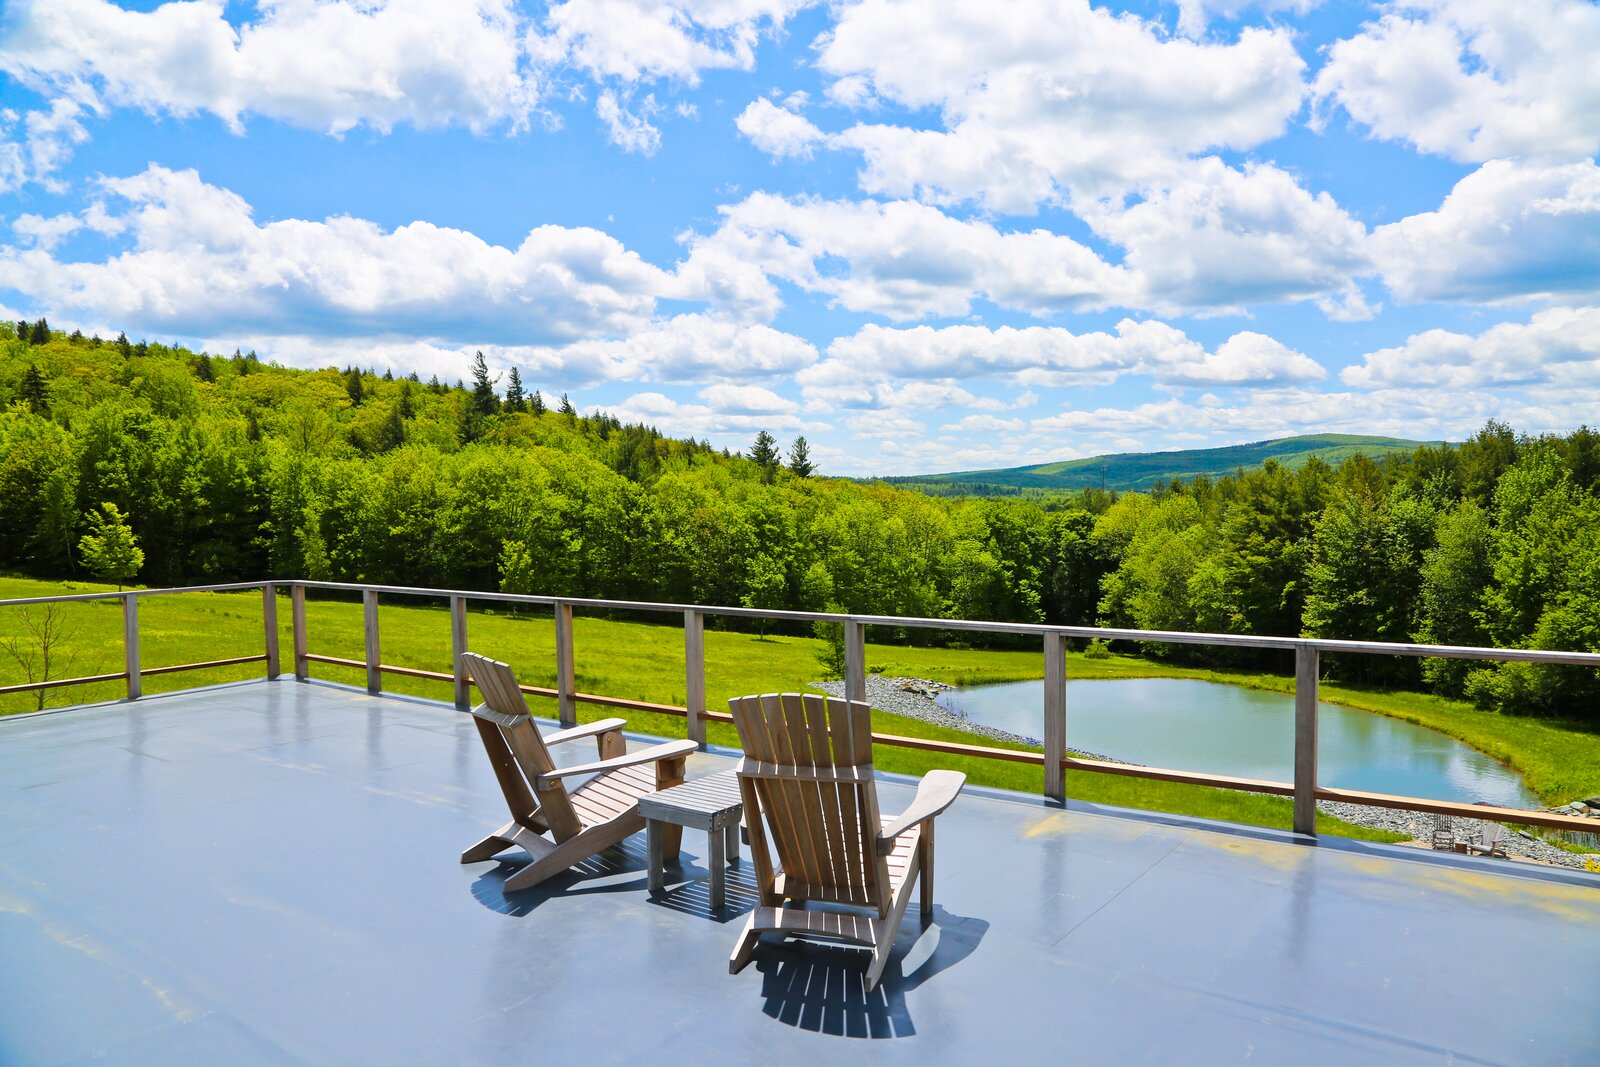 Flat roofs double as observation points and are a major selling point of the house, which has panoramic forest views